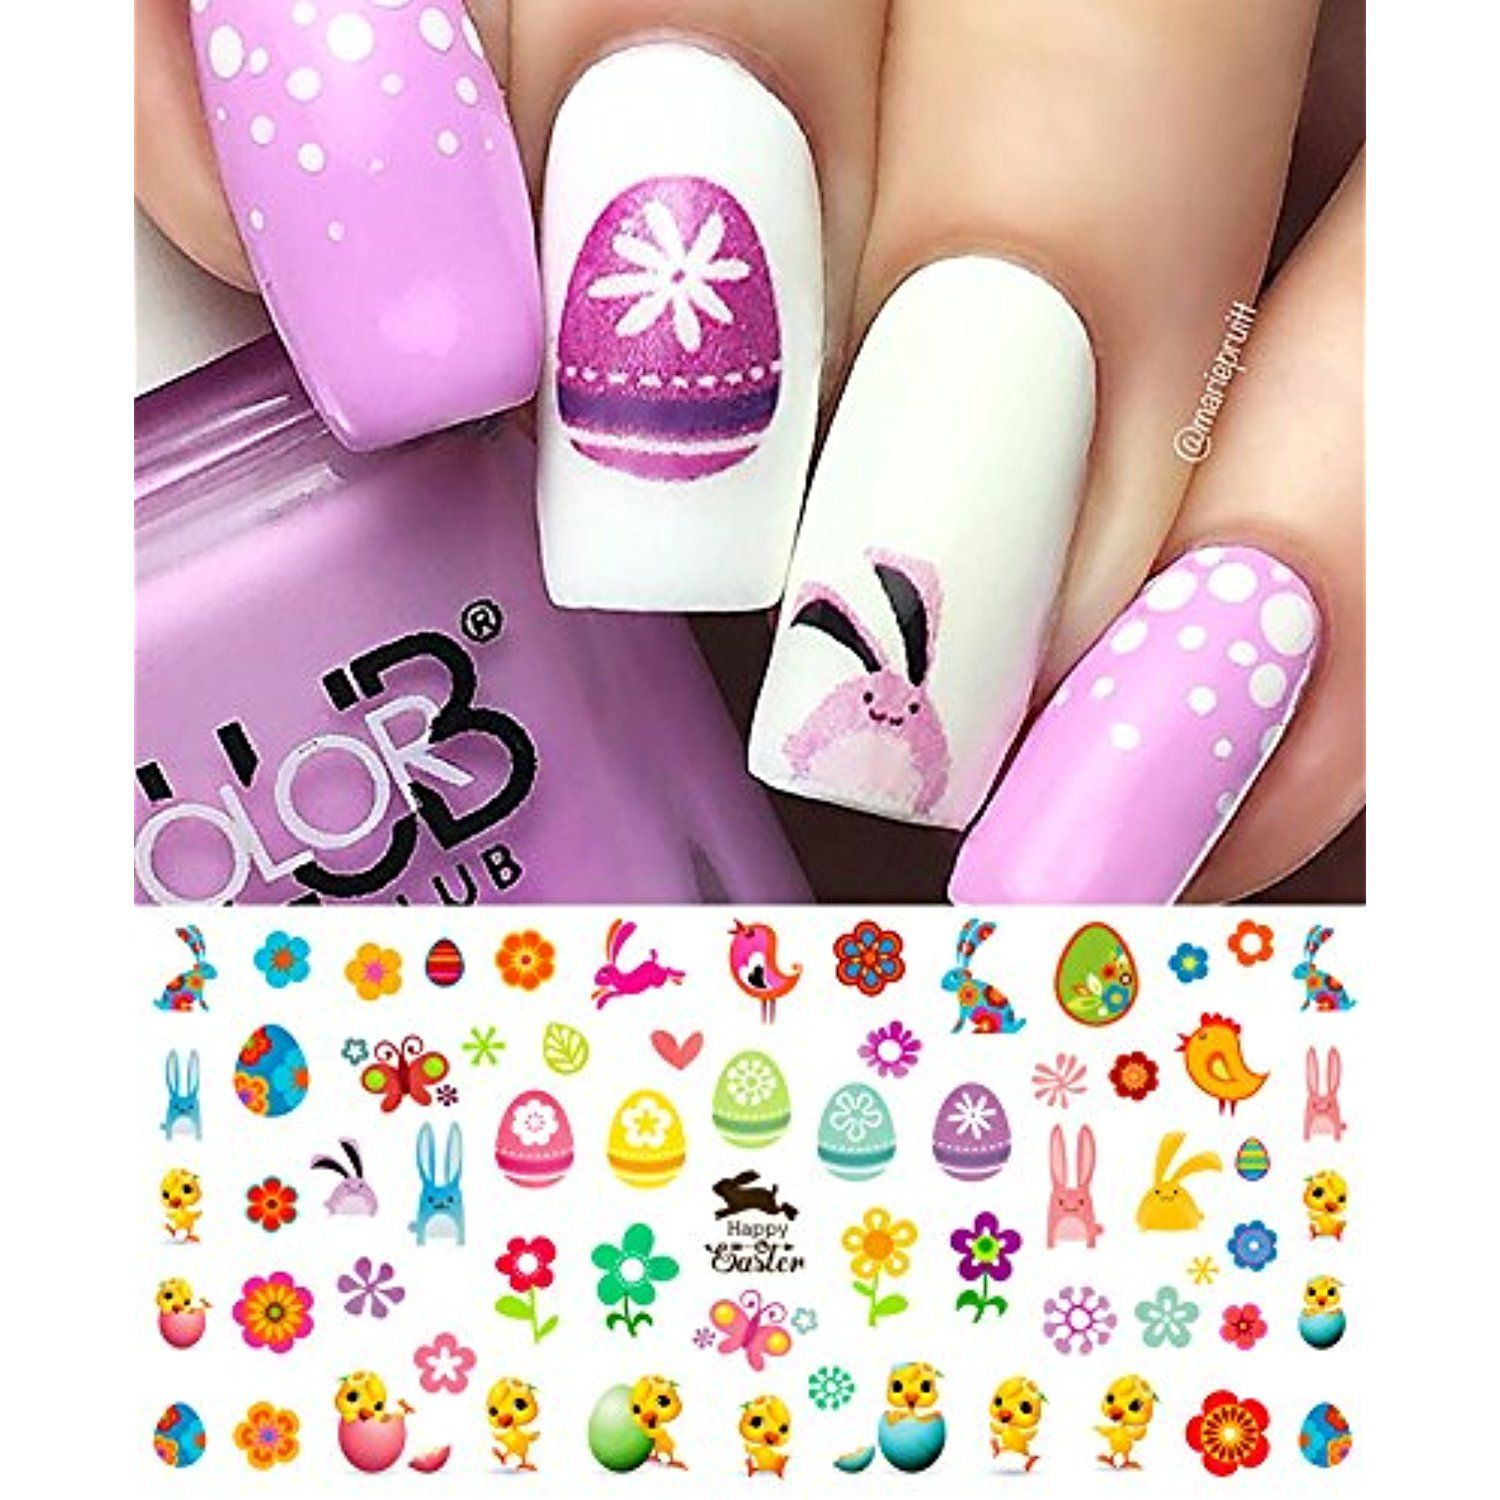 Easter Nail Decals Assortment Nailartaccessories Nail Art